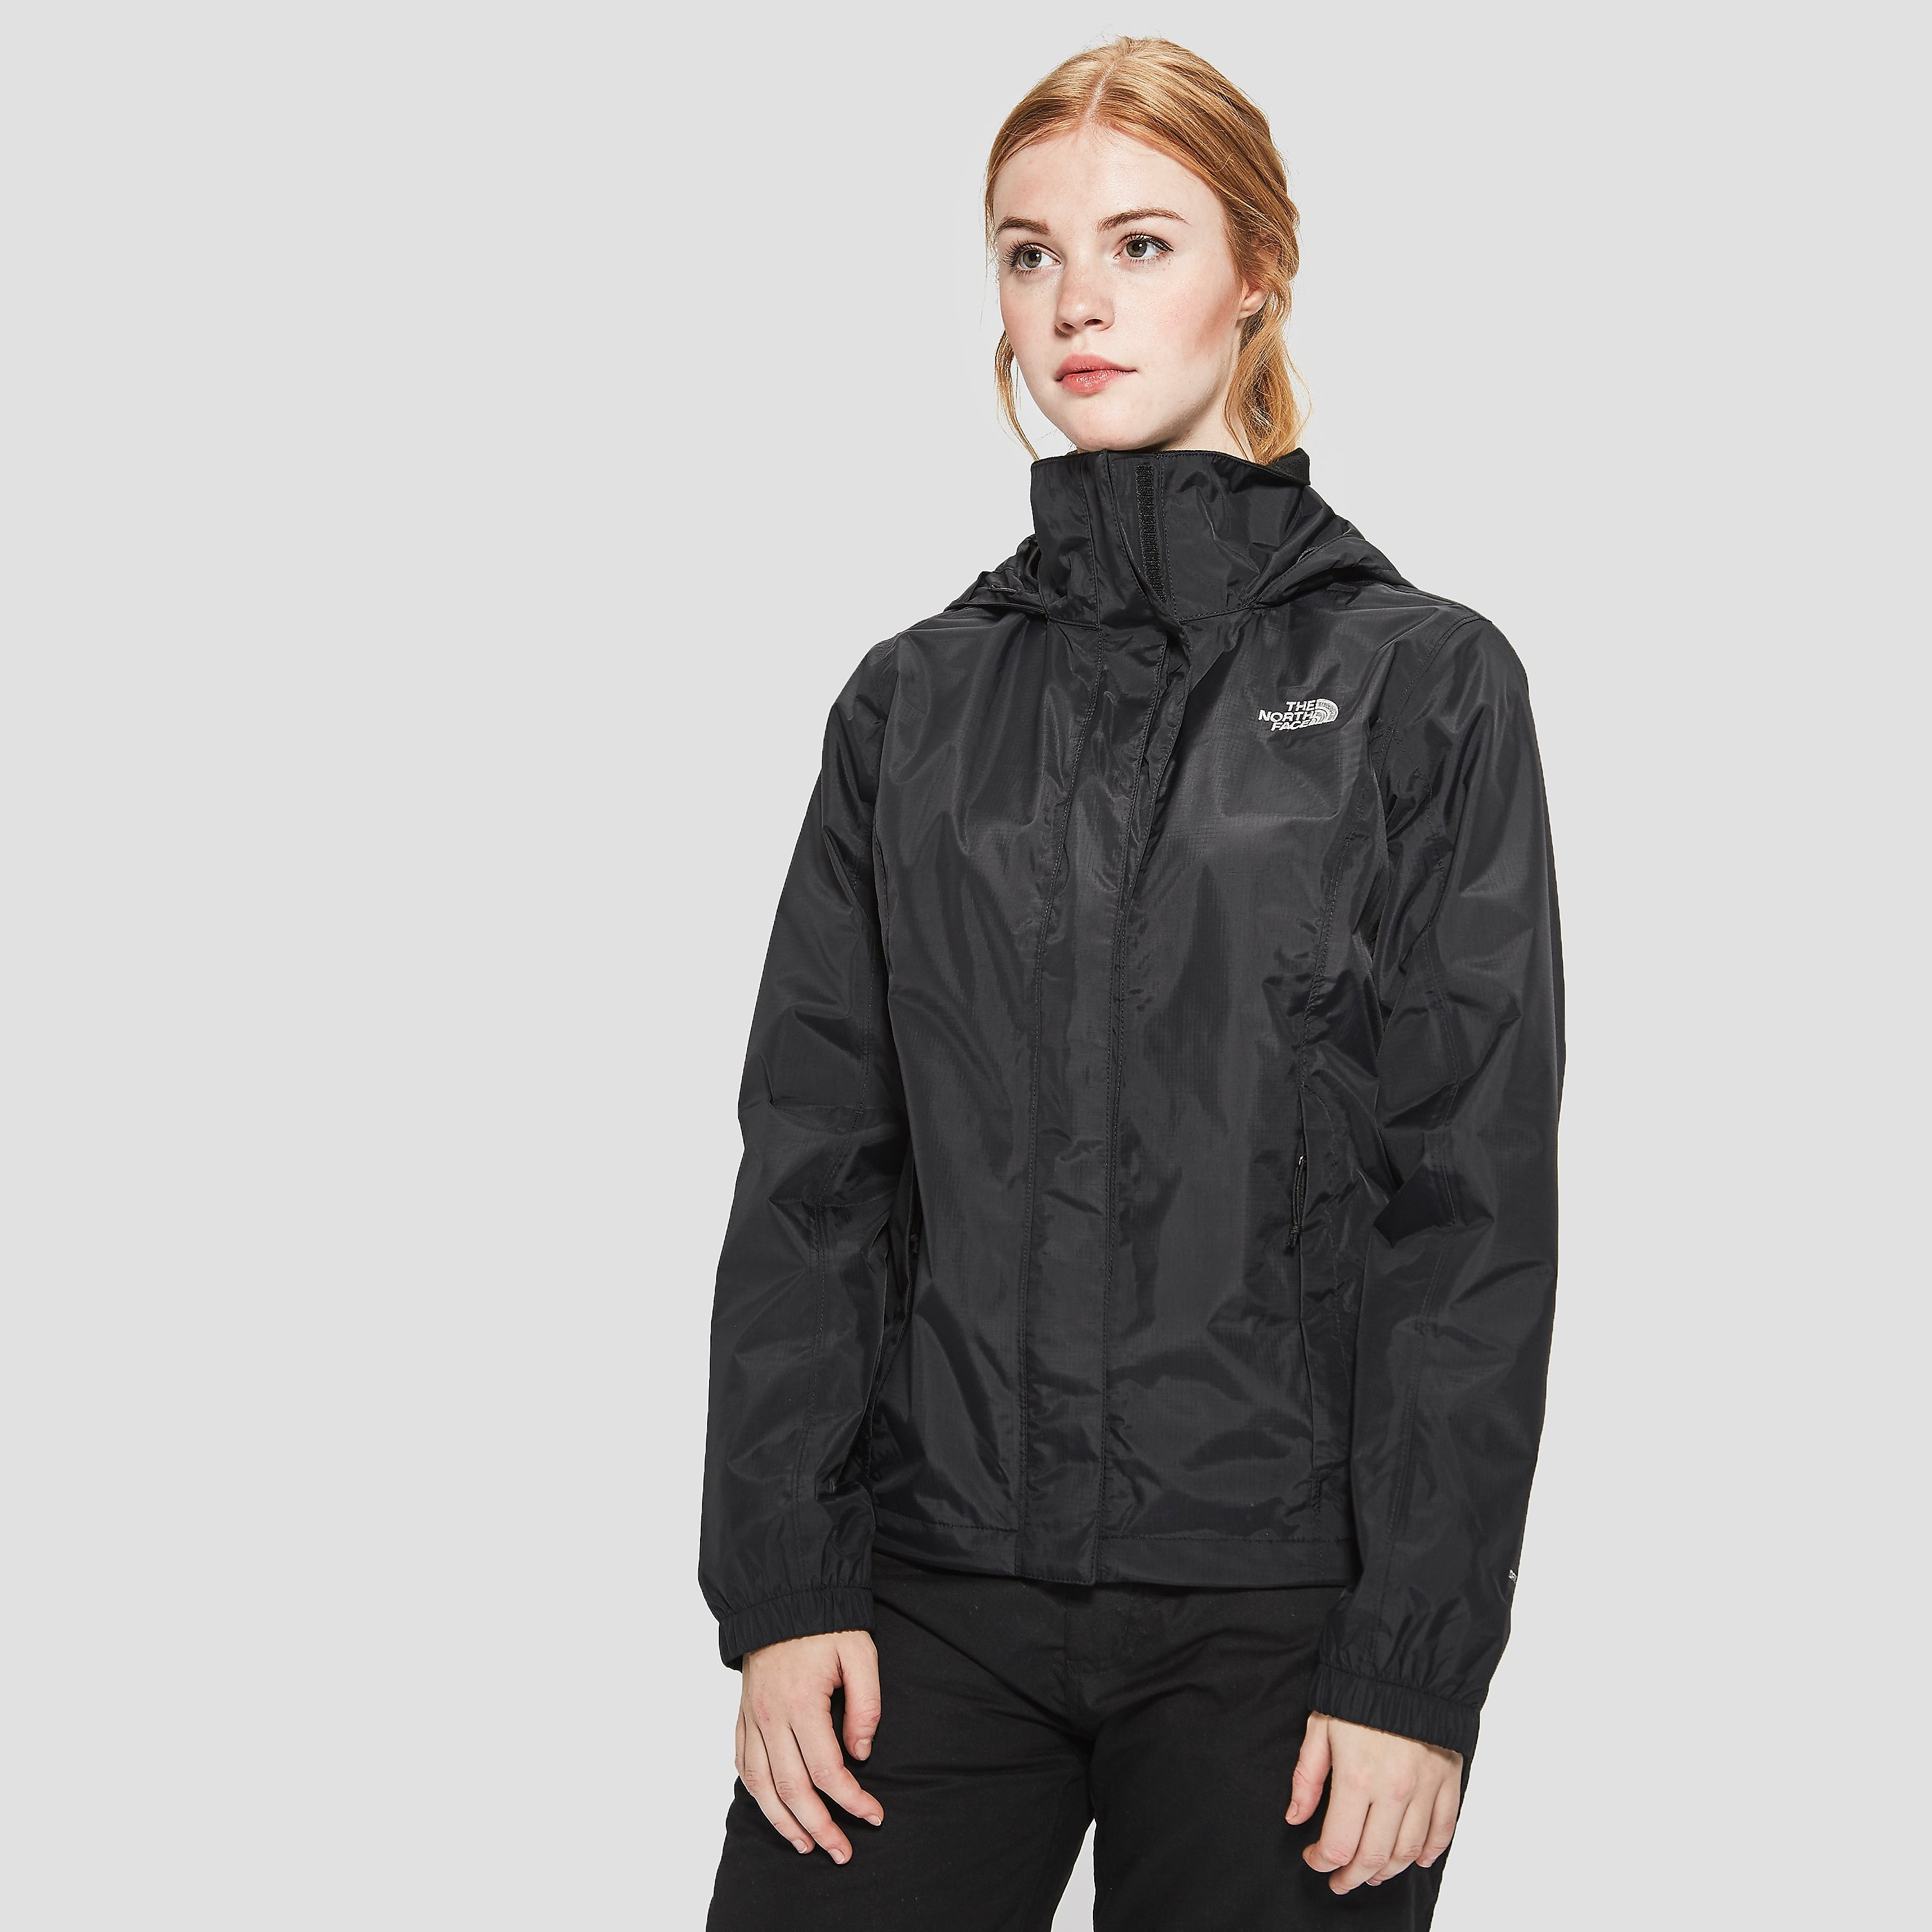 THE NORTH FACE RESOLVE OUTDOORJAS DAMES